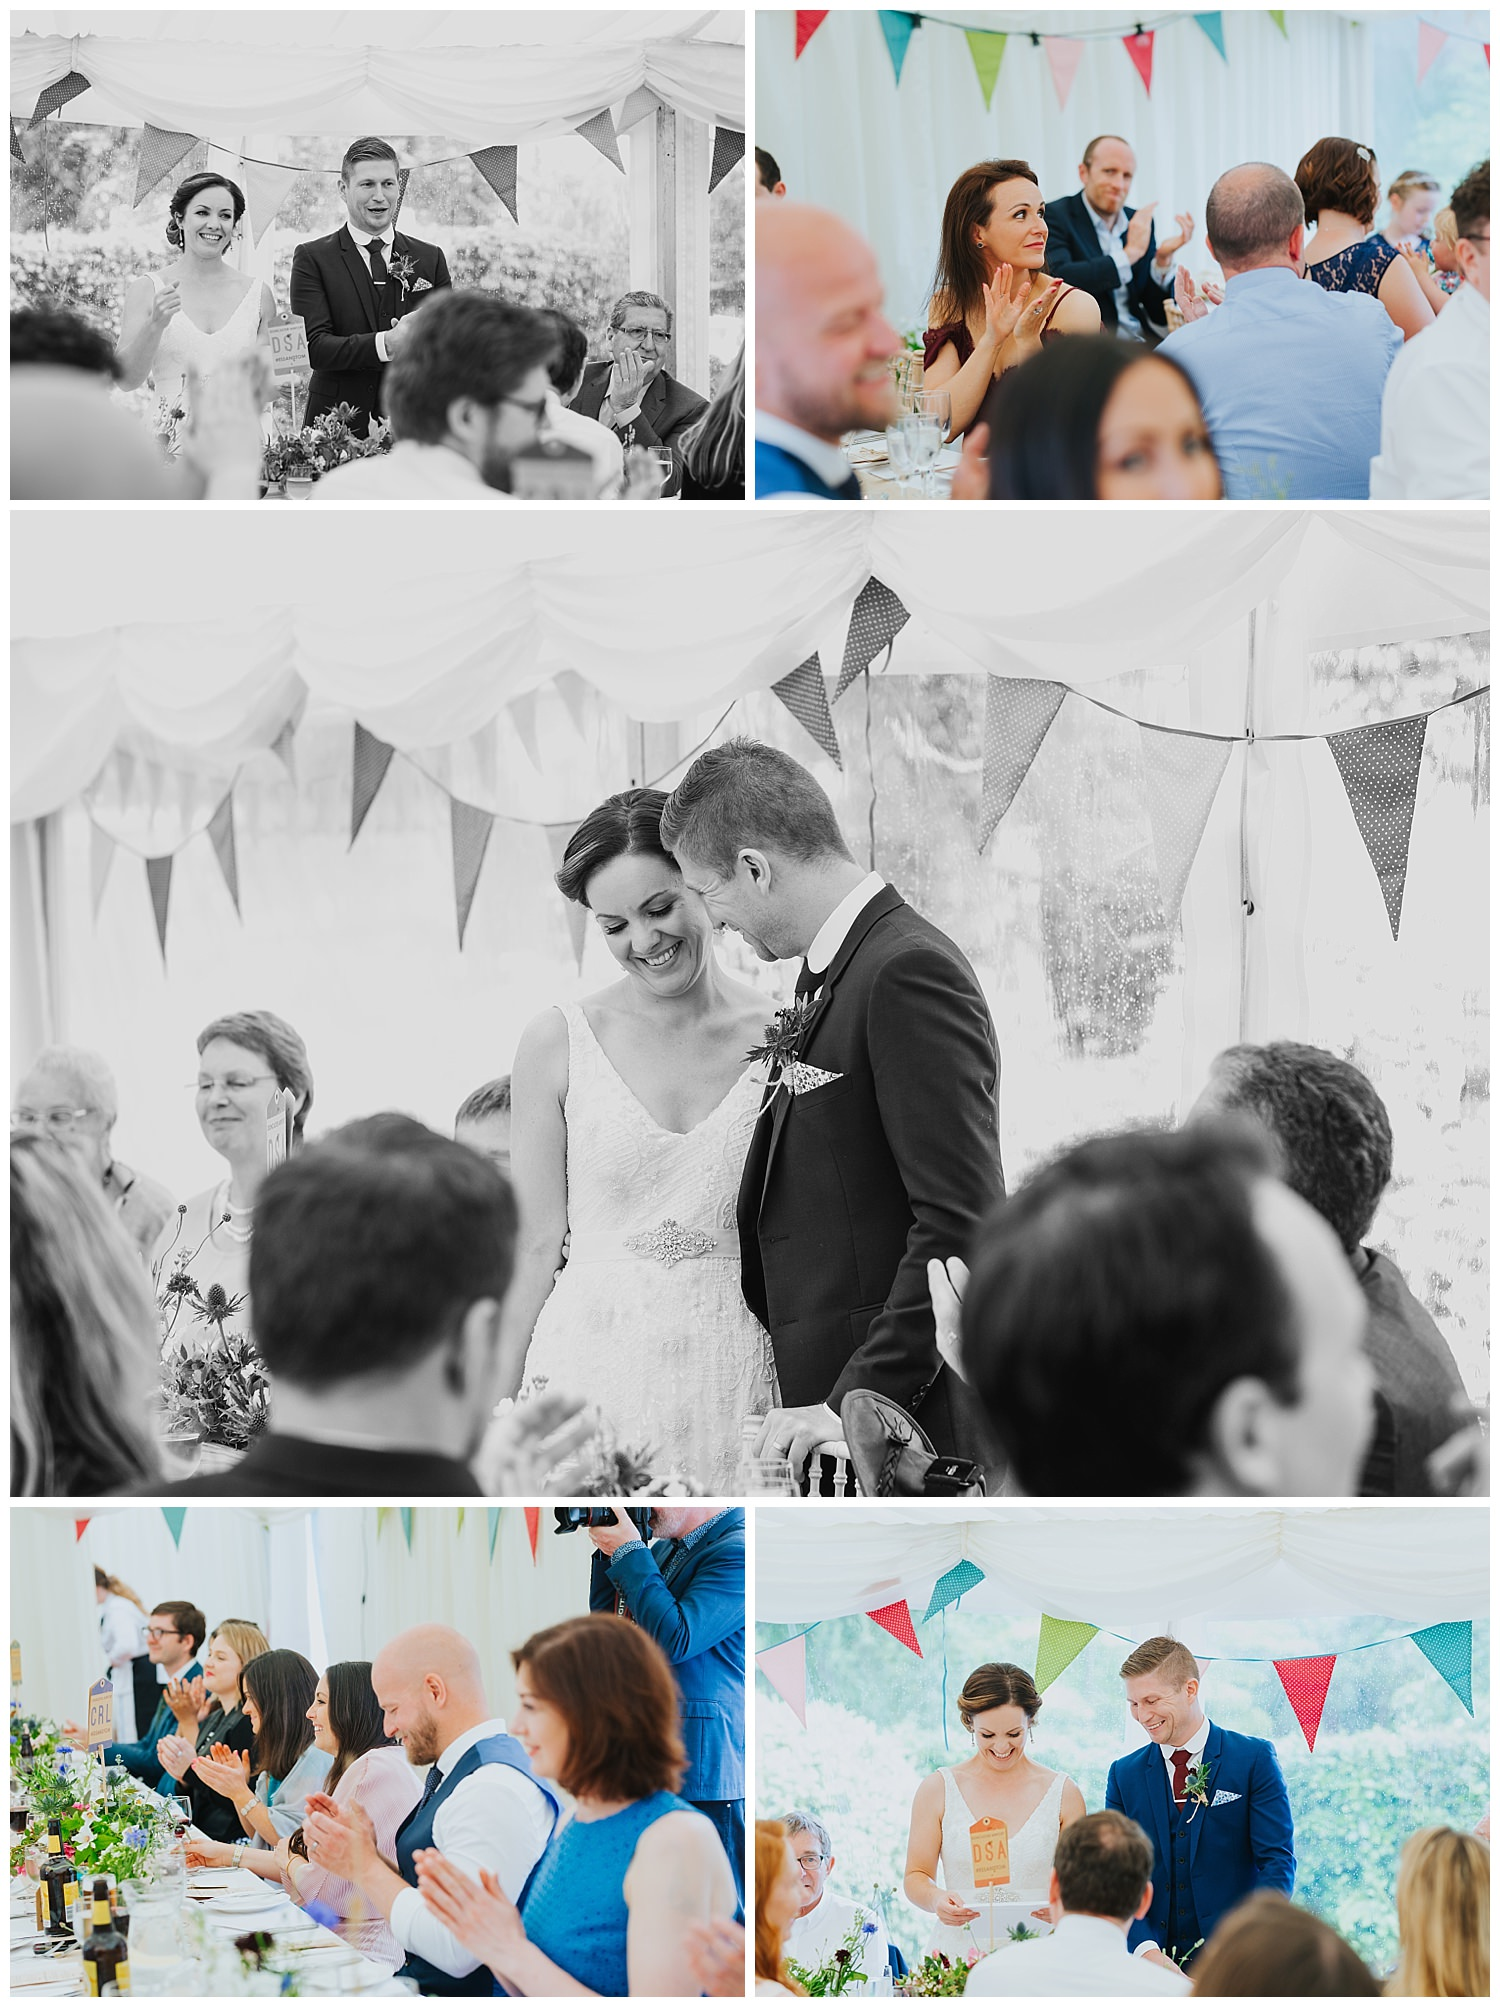 e+t_ballilogue_kilkenny_wedding_photographer_liviafigueiredo_167.jpg